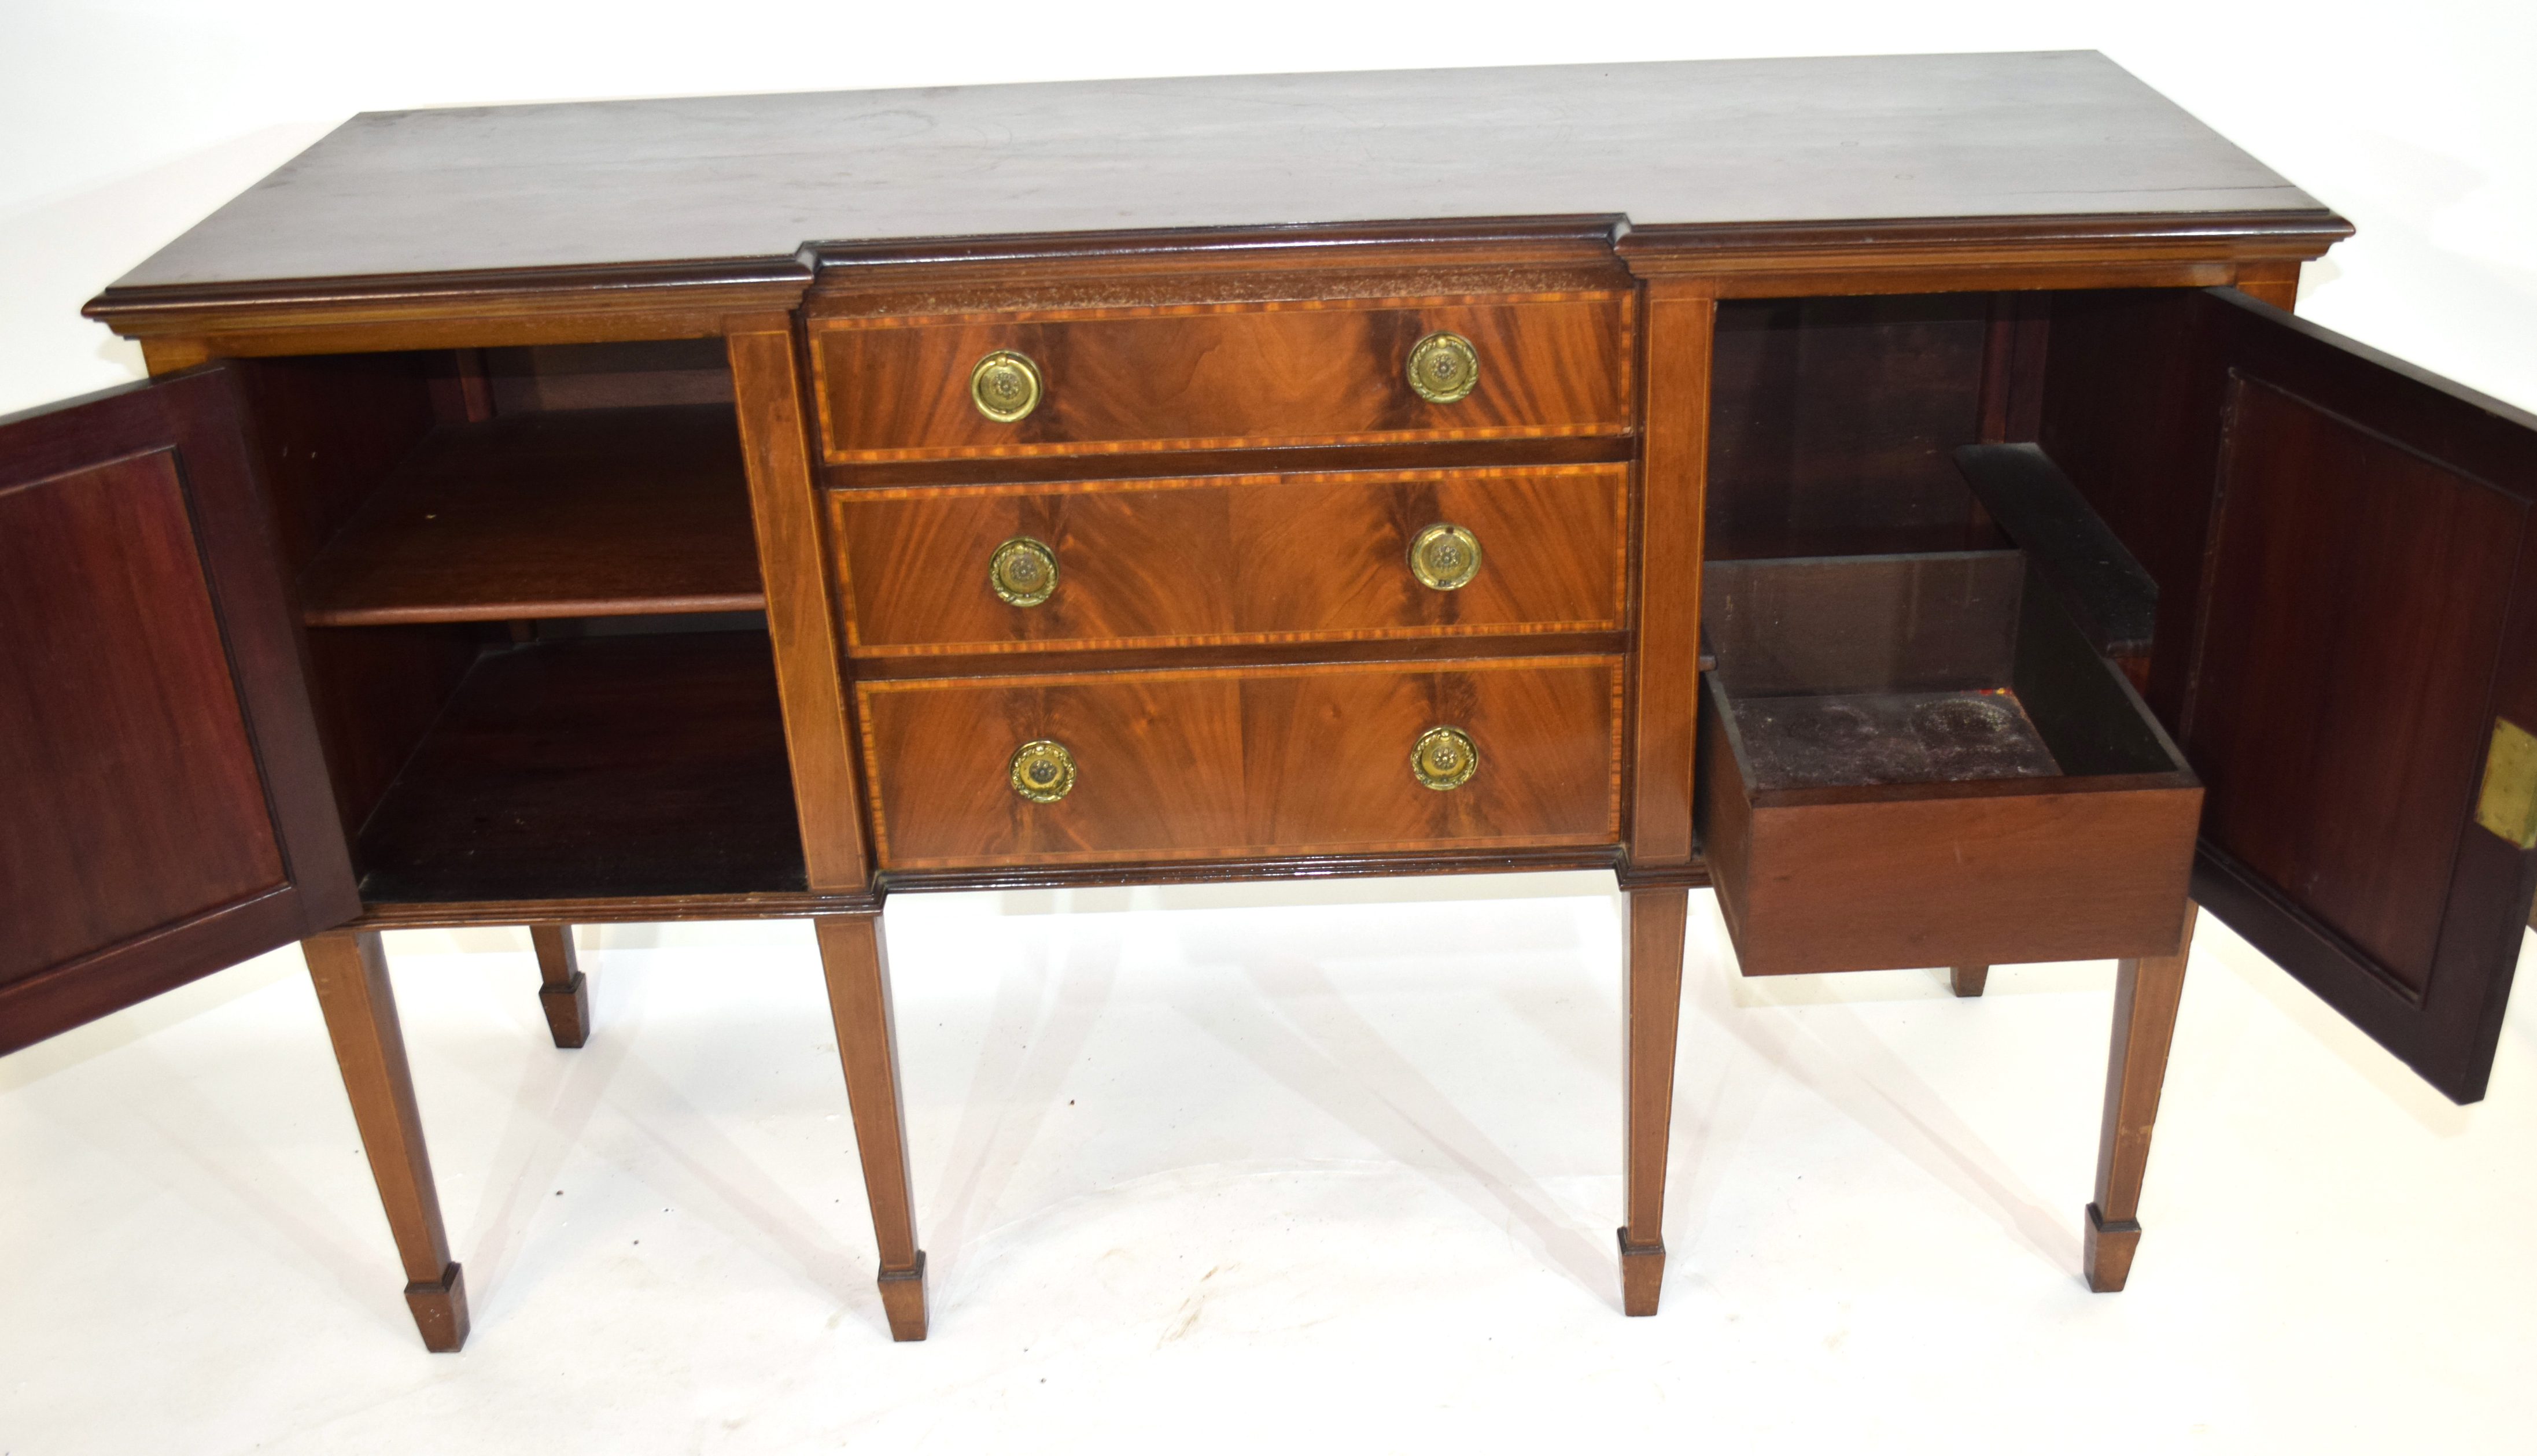 Edwardian mahogany sideboard with three drawers fitted with brass ringlet handles and two panelled - Image 3 of 4